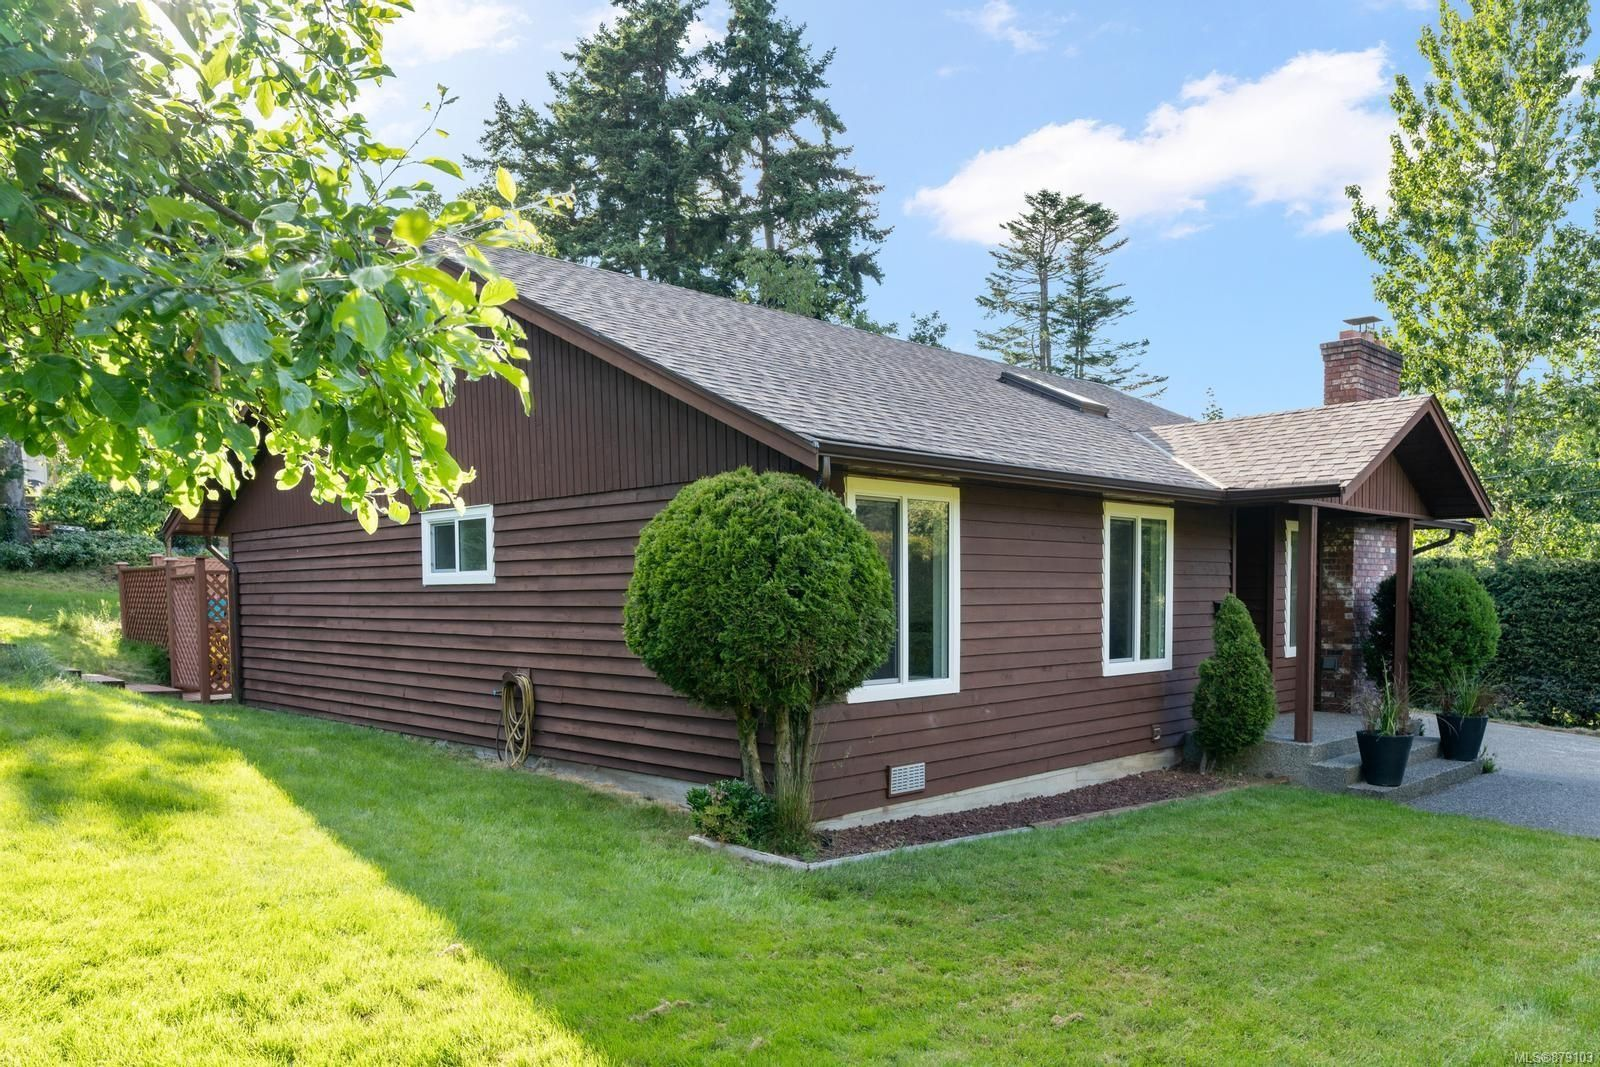 Main Photo: 3712 Blenkinsop Rd in : SE Maplewood House for sale (Saanich East)  : MLS®# 879103